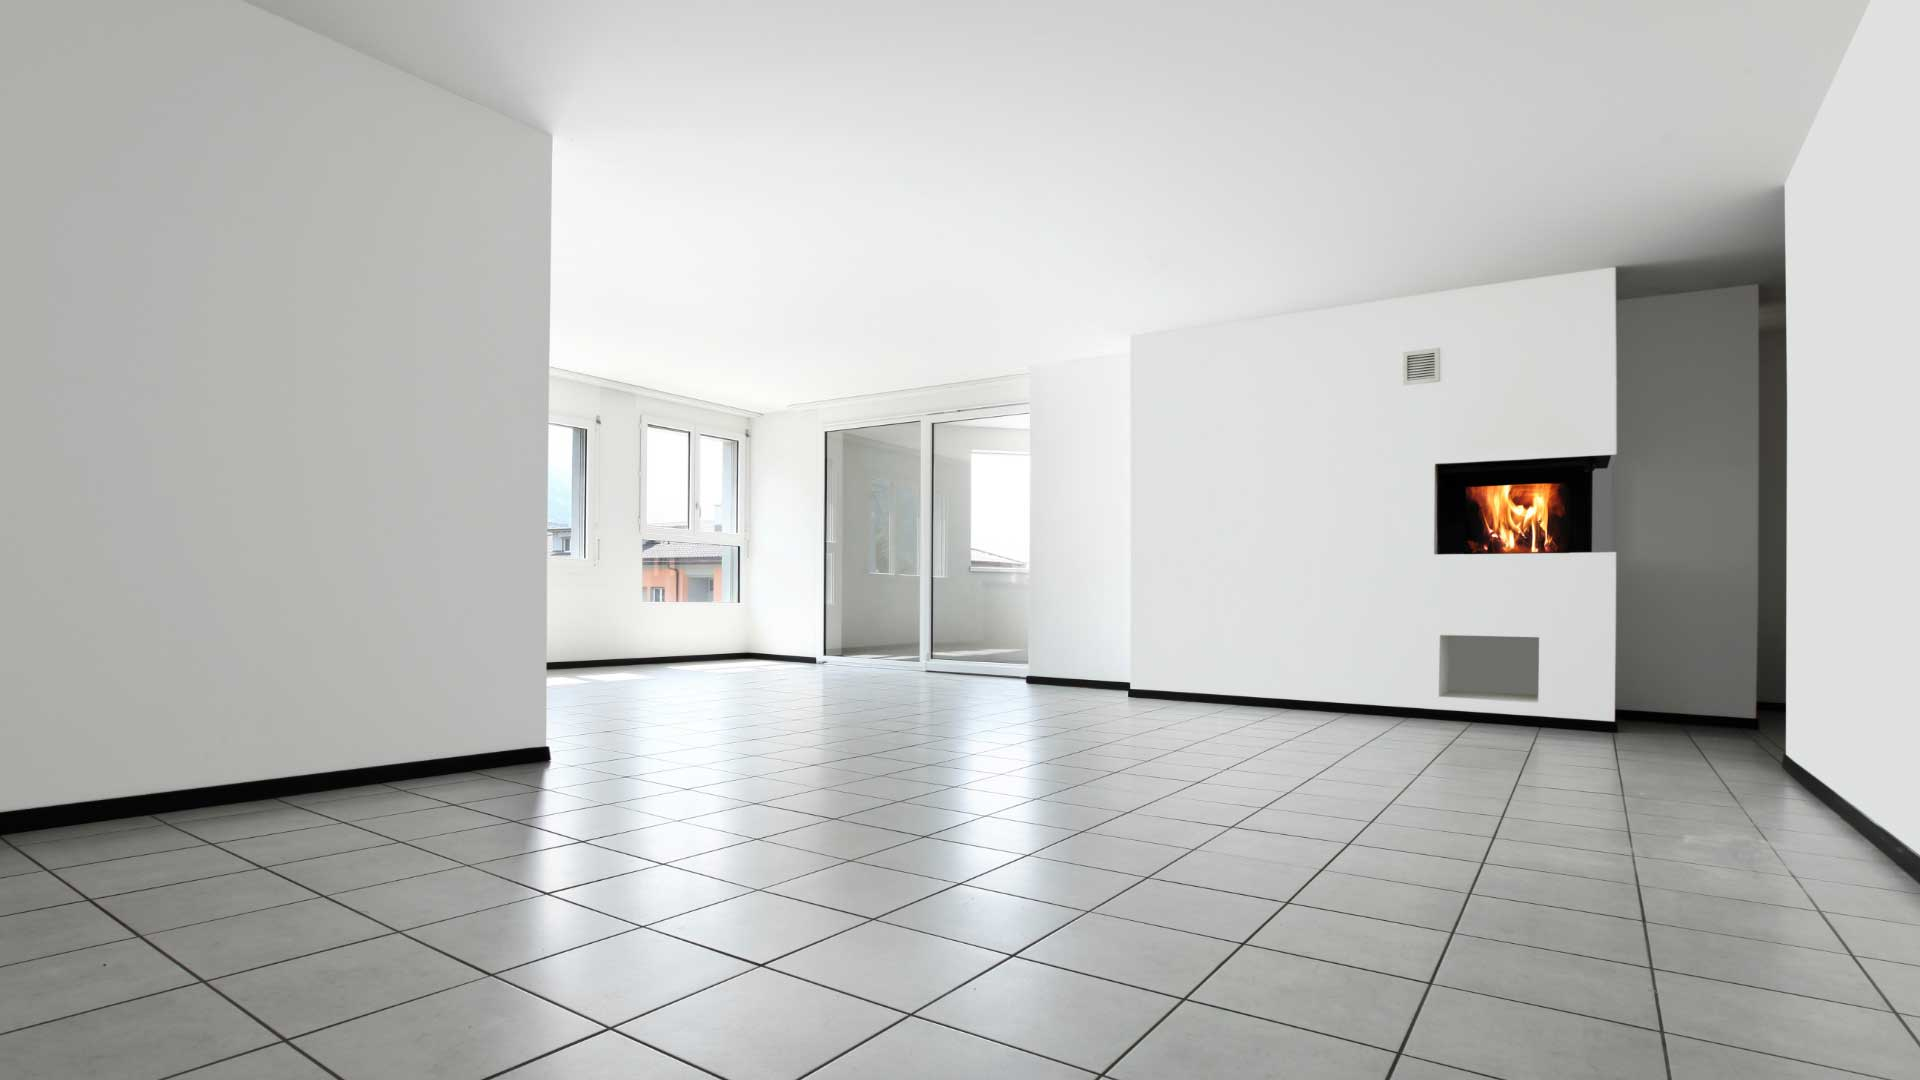 The Best Tile & Grout Cleaning in Las Vegas